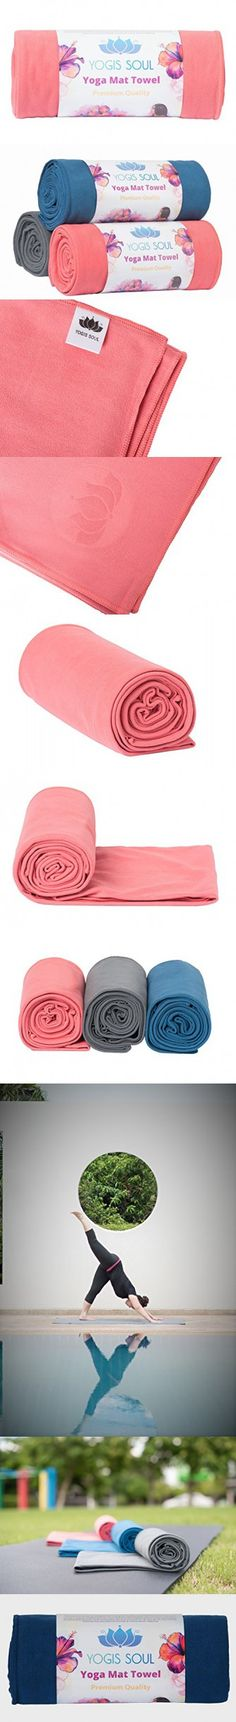 Yoga Mat Towel by Yogis Soul-Premium Soft Suede Microfiber-Provide Extra Grip and Non-Slip Once Dampened-Great Moisture Absorption for All Yoga Types include Bikram and Hot yoga (Pink)